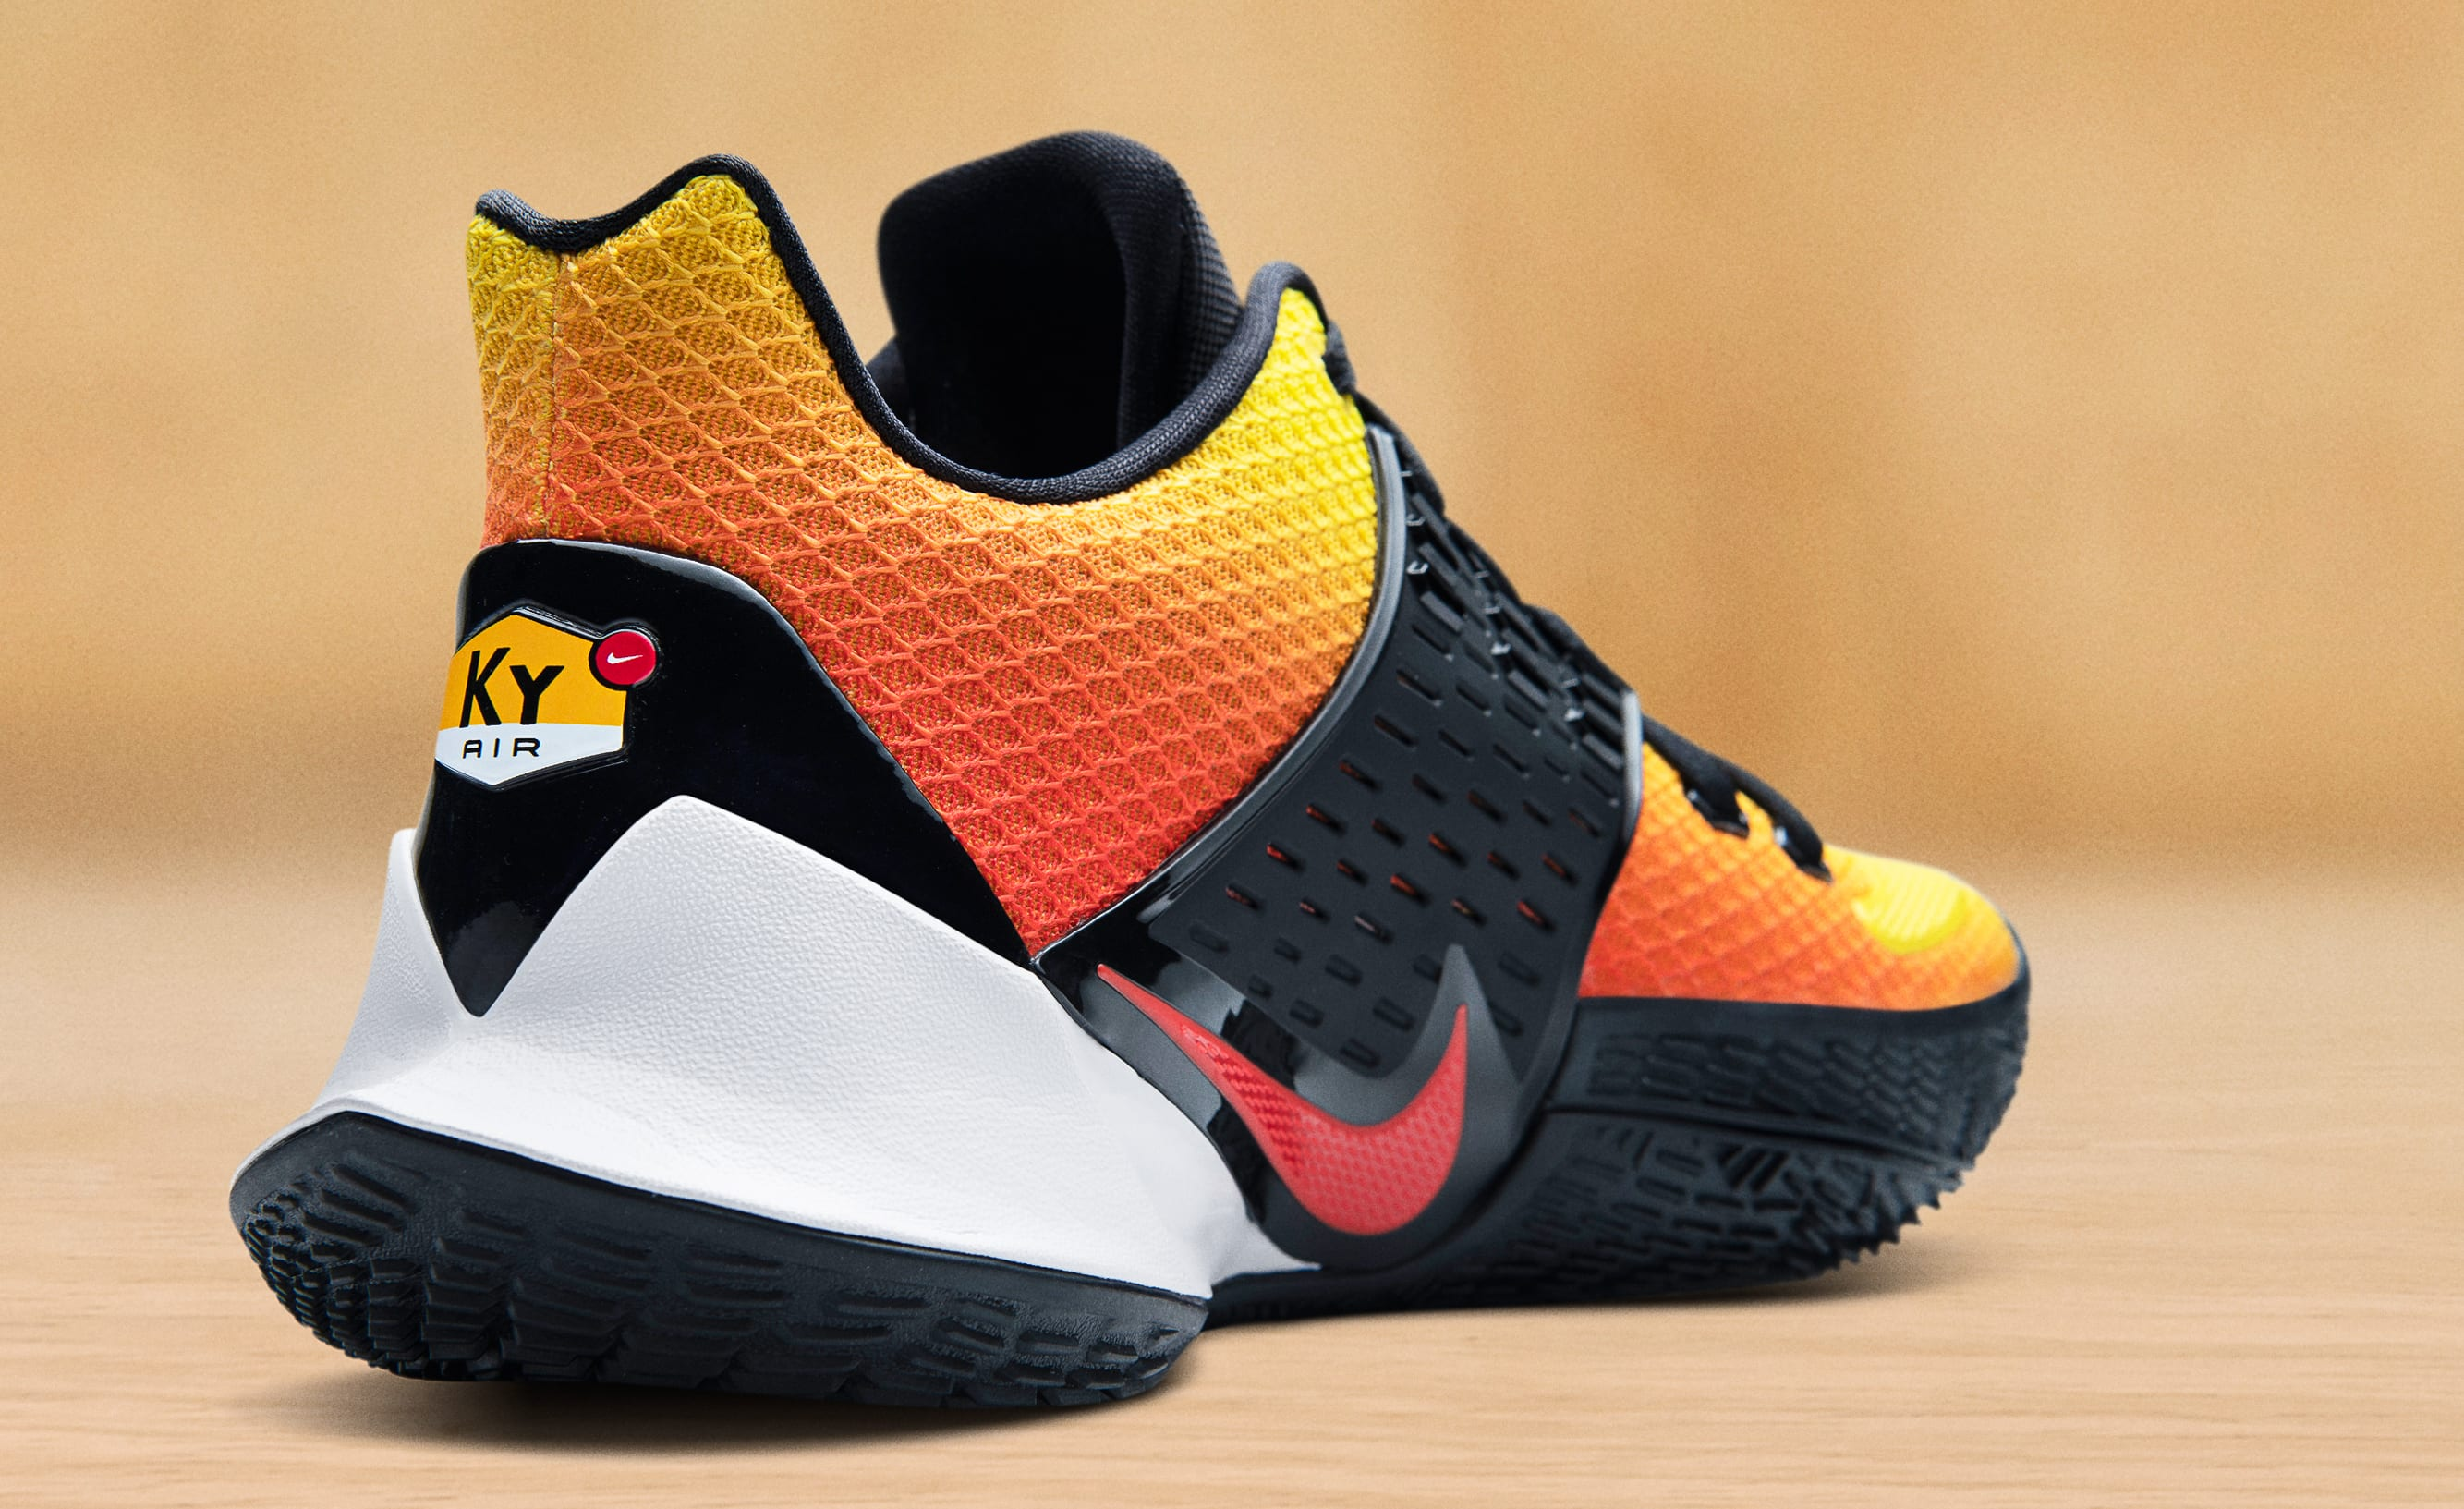 nike-kyrie-low-2-nike-air-max-plus-sunset-heel